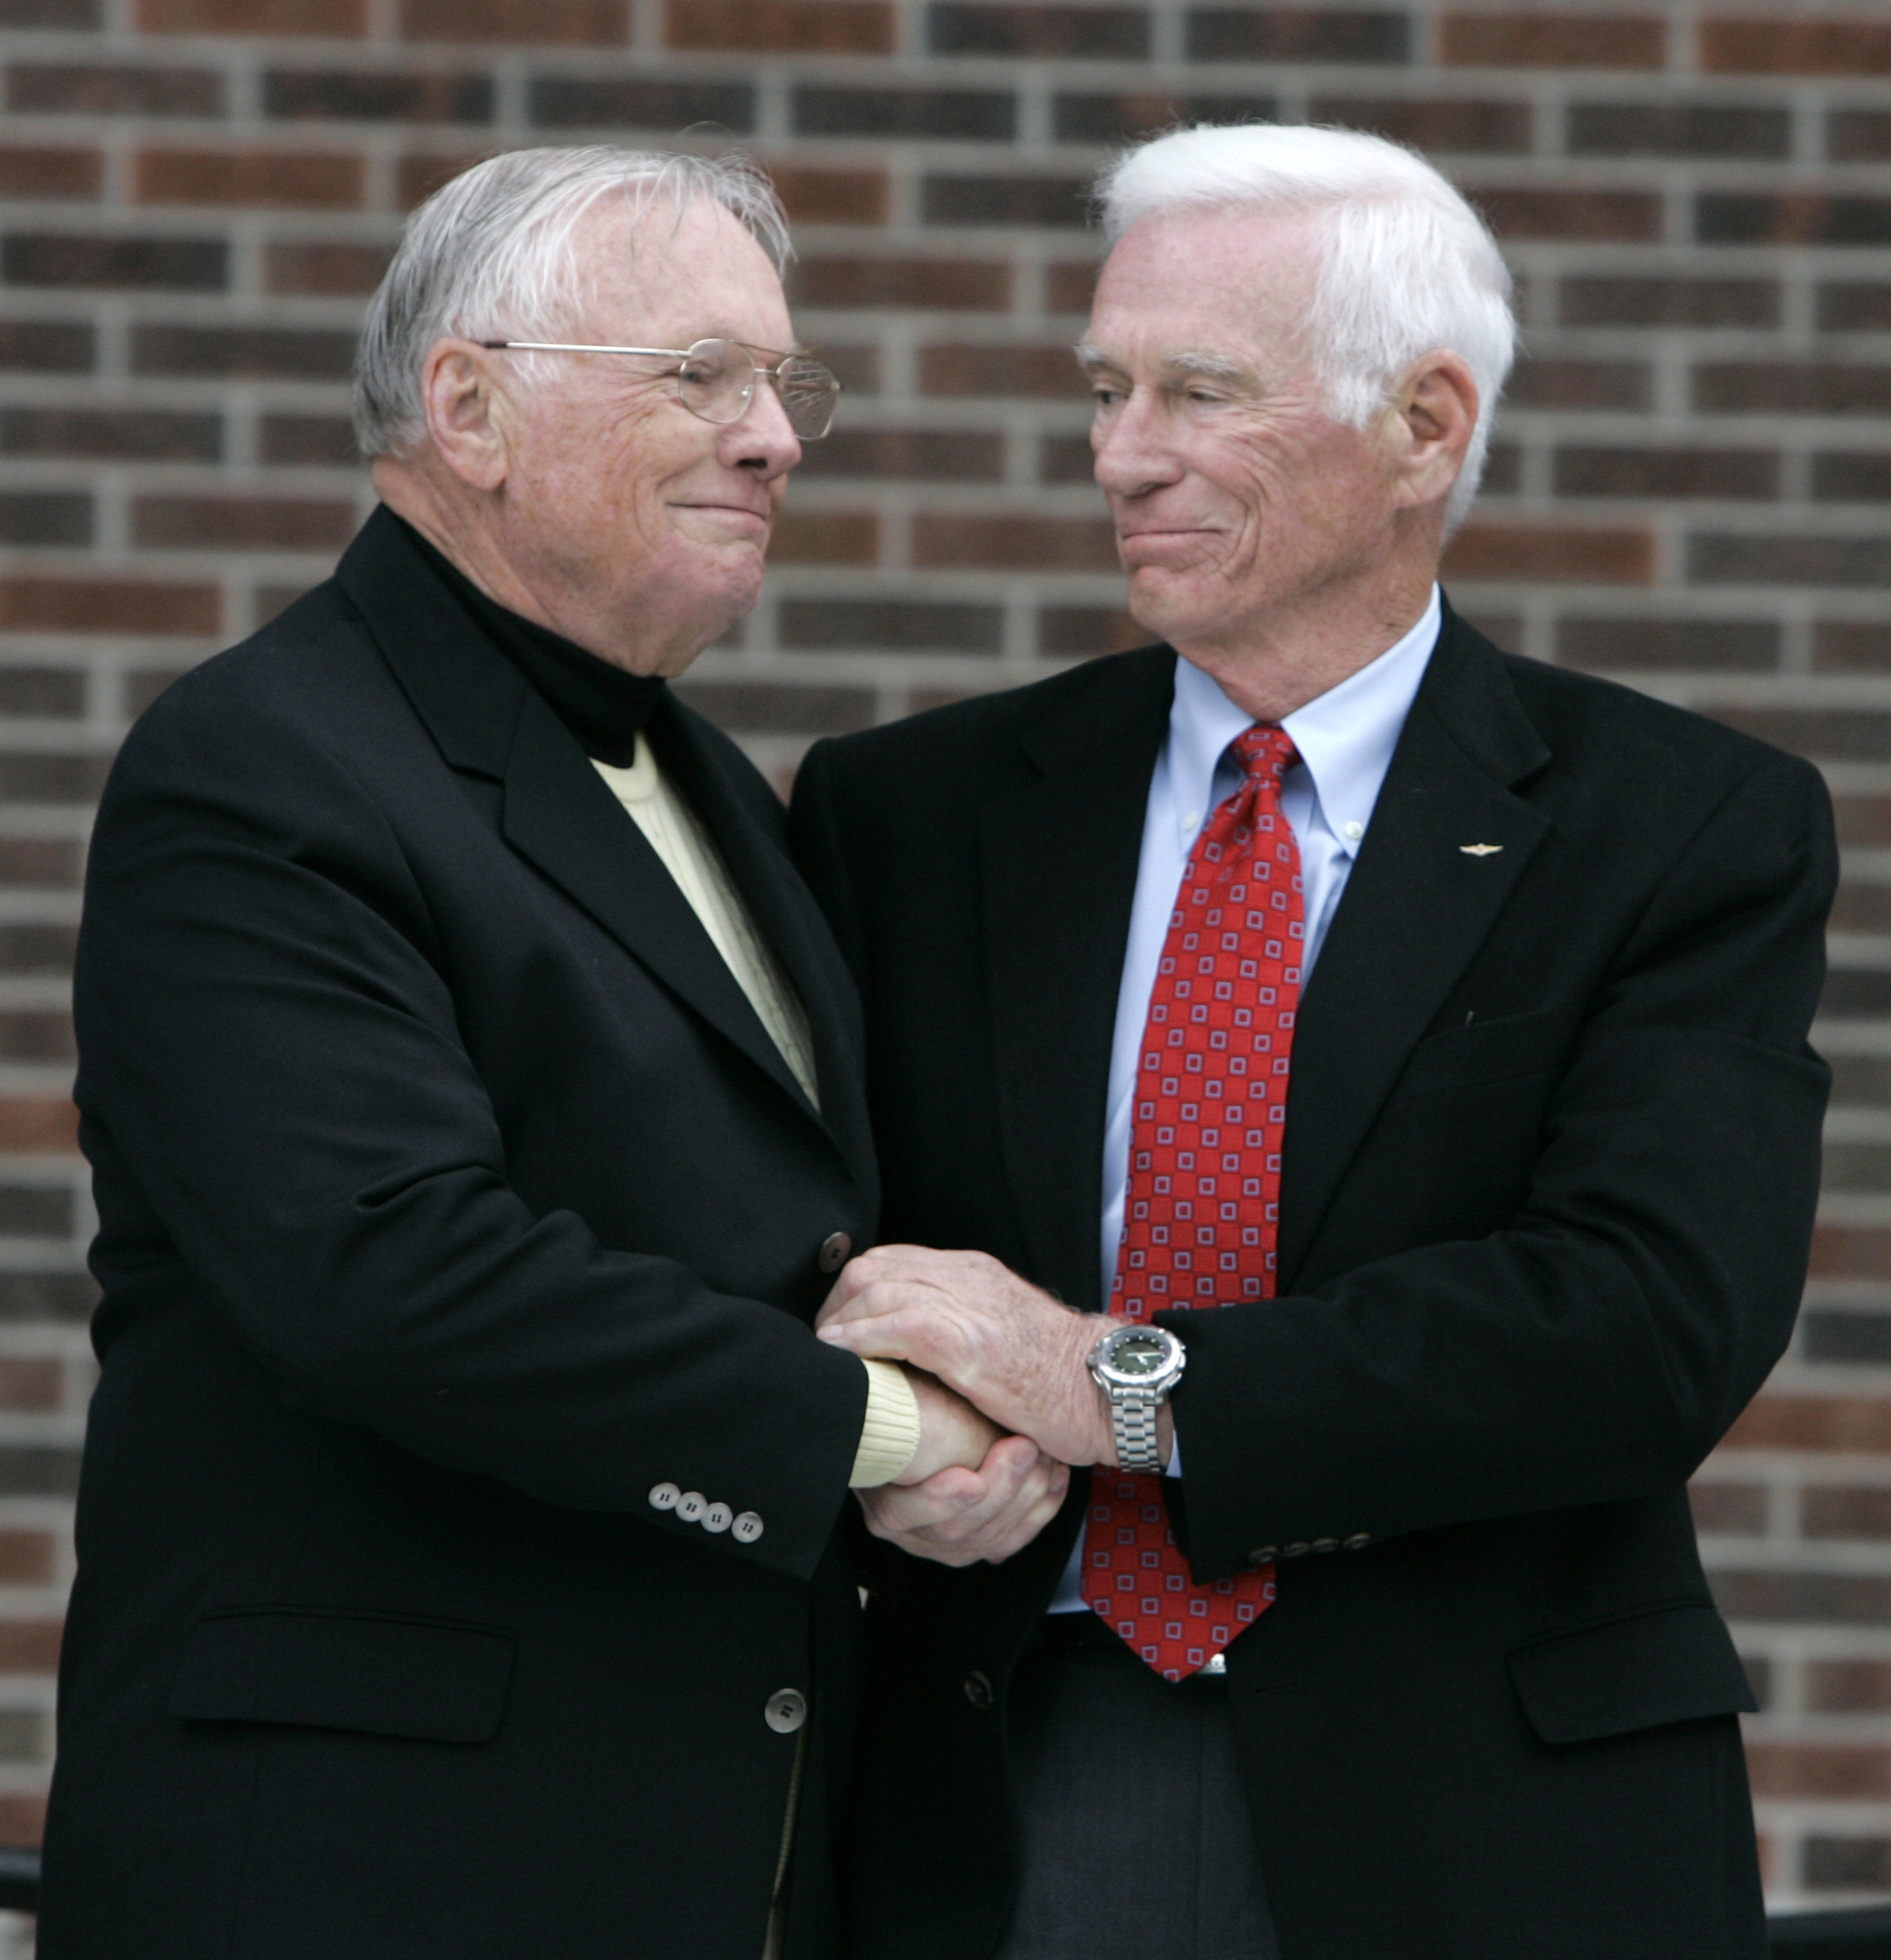 Former astronaut Neil Armstrong (L) is congratulated by fellow ex-astronaut Gene Cernan following the dedication ceremony of the Neil Armstrong Hall of Engineering at Purdue University in West Lafayette, Ind. (AP Photo/Michael Conroy)